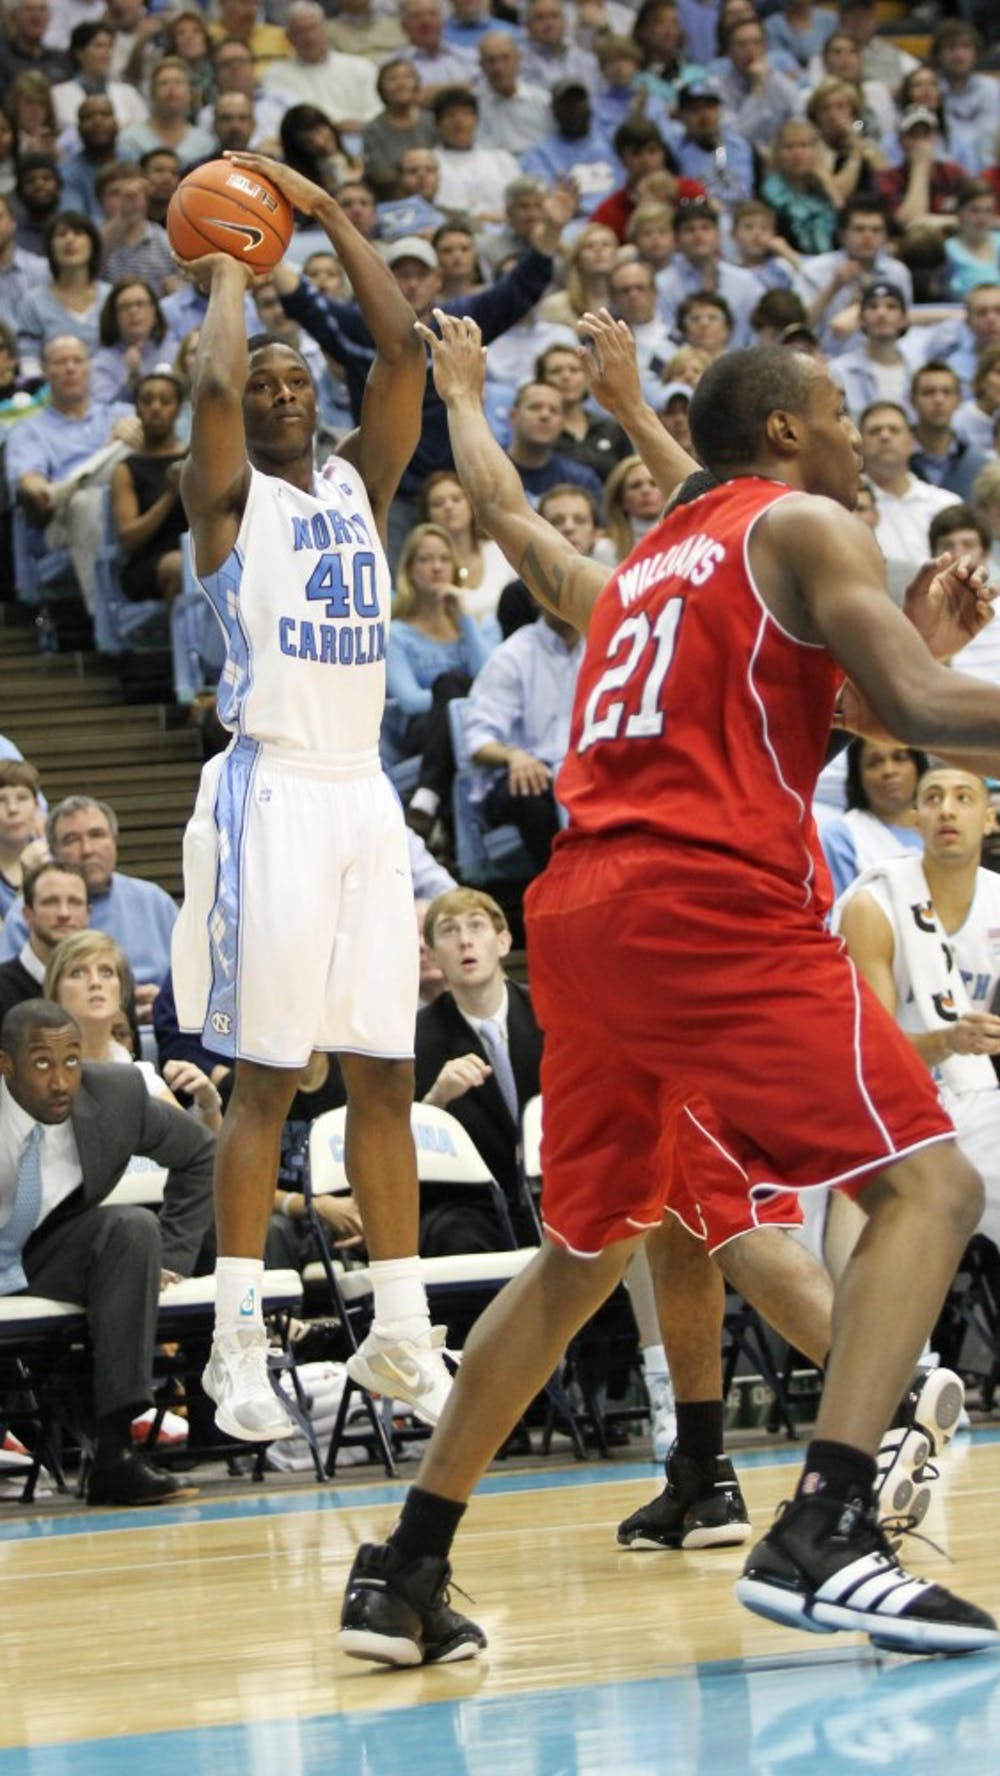 Harrison Barnes with a jump shot to expand Carolina's lead on Saturday.